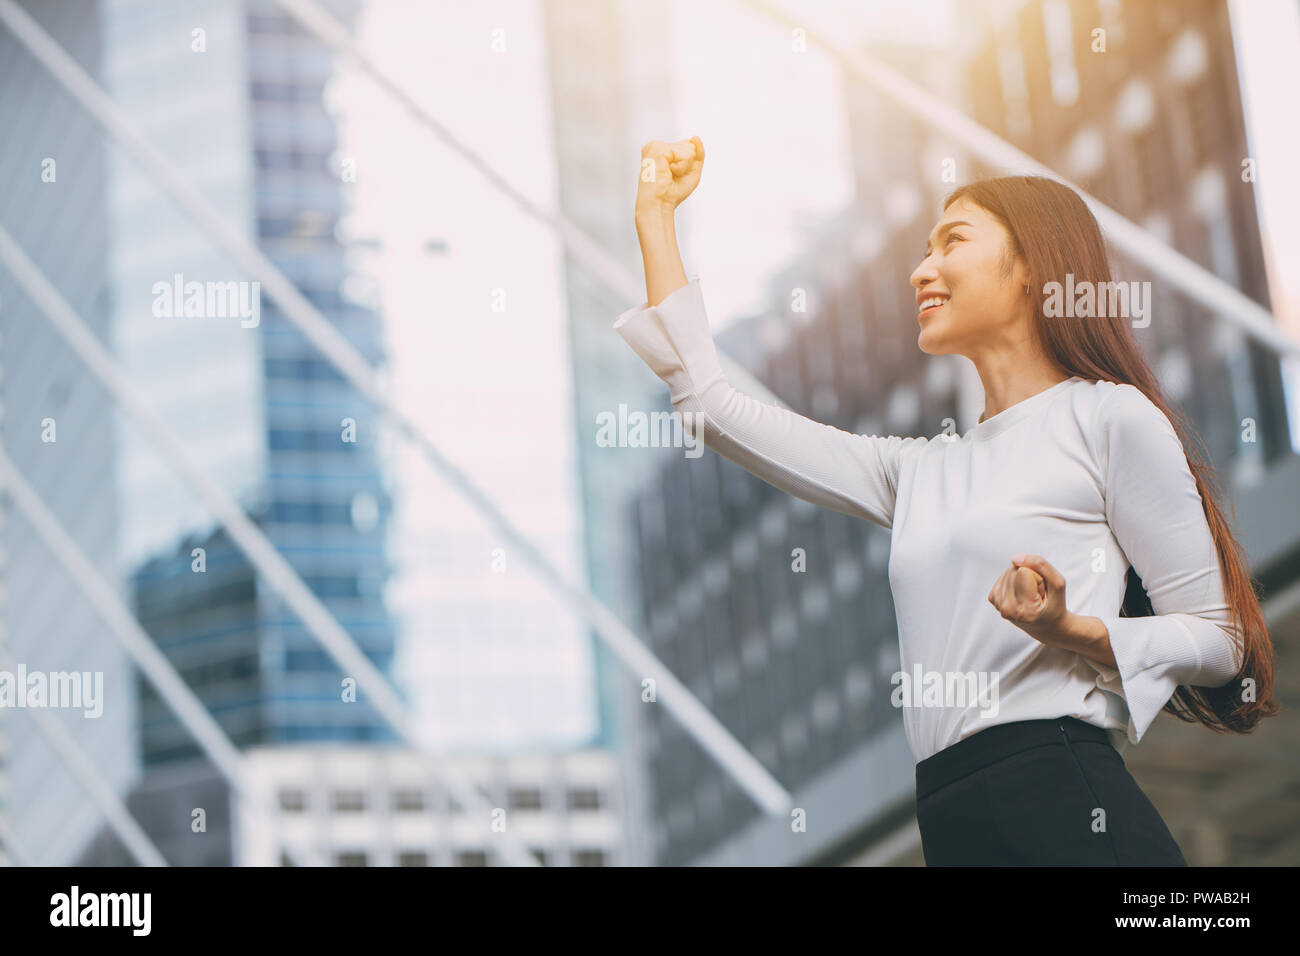 winner successful business employee girl rise up fist hand with city office building background - Stock Image